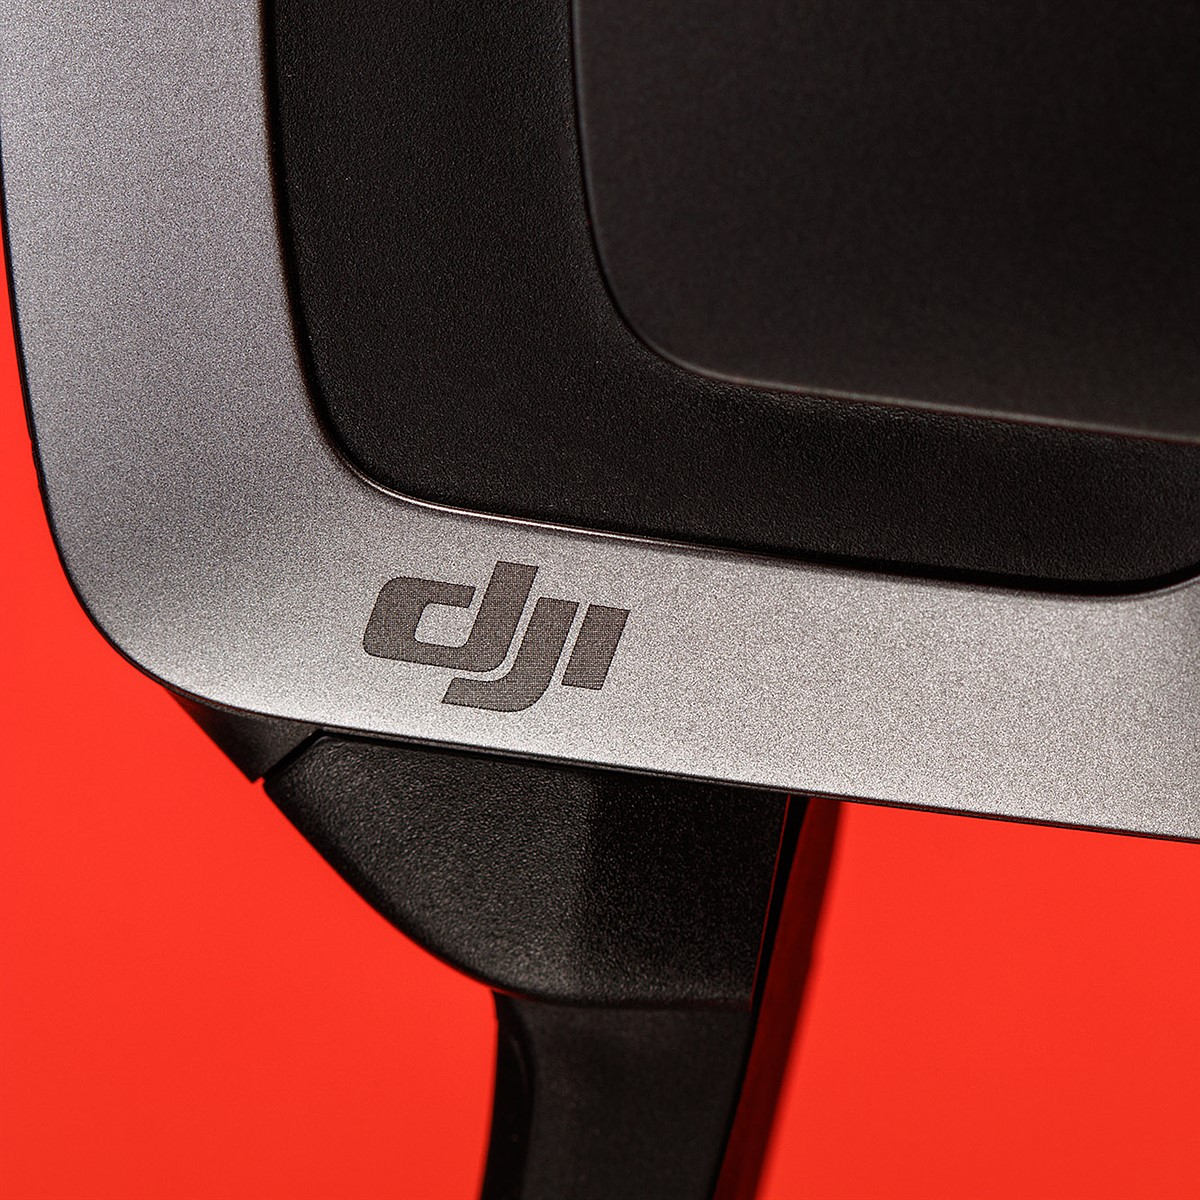 Review: DJI Mavic Air: Digital Photography Review